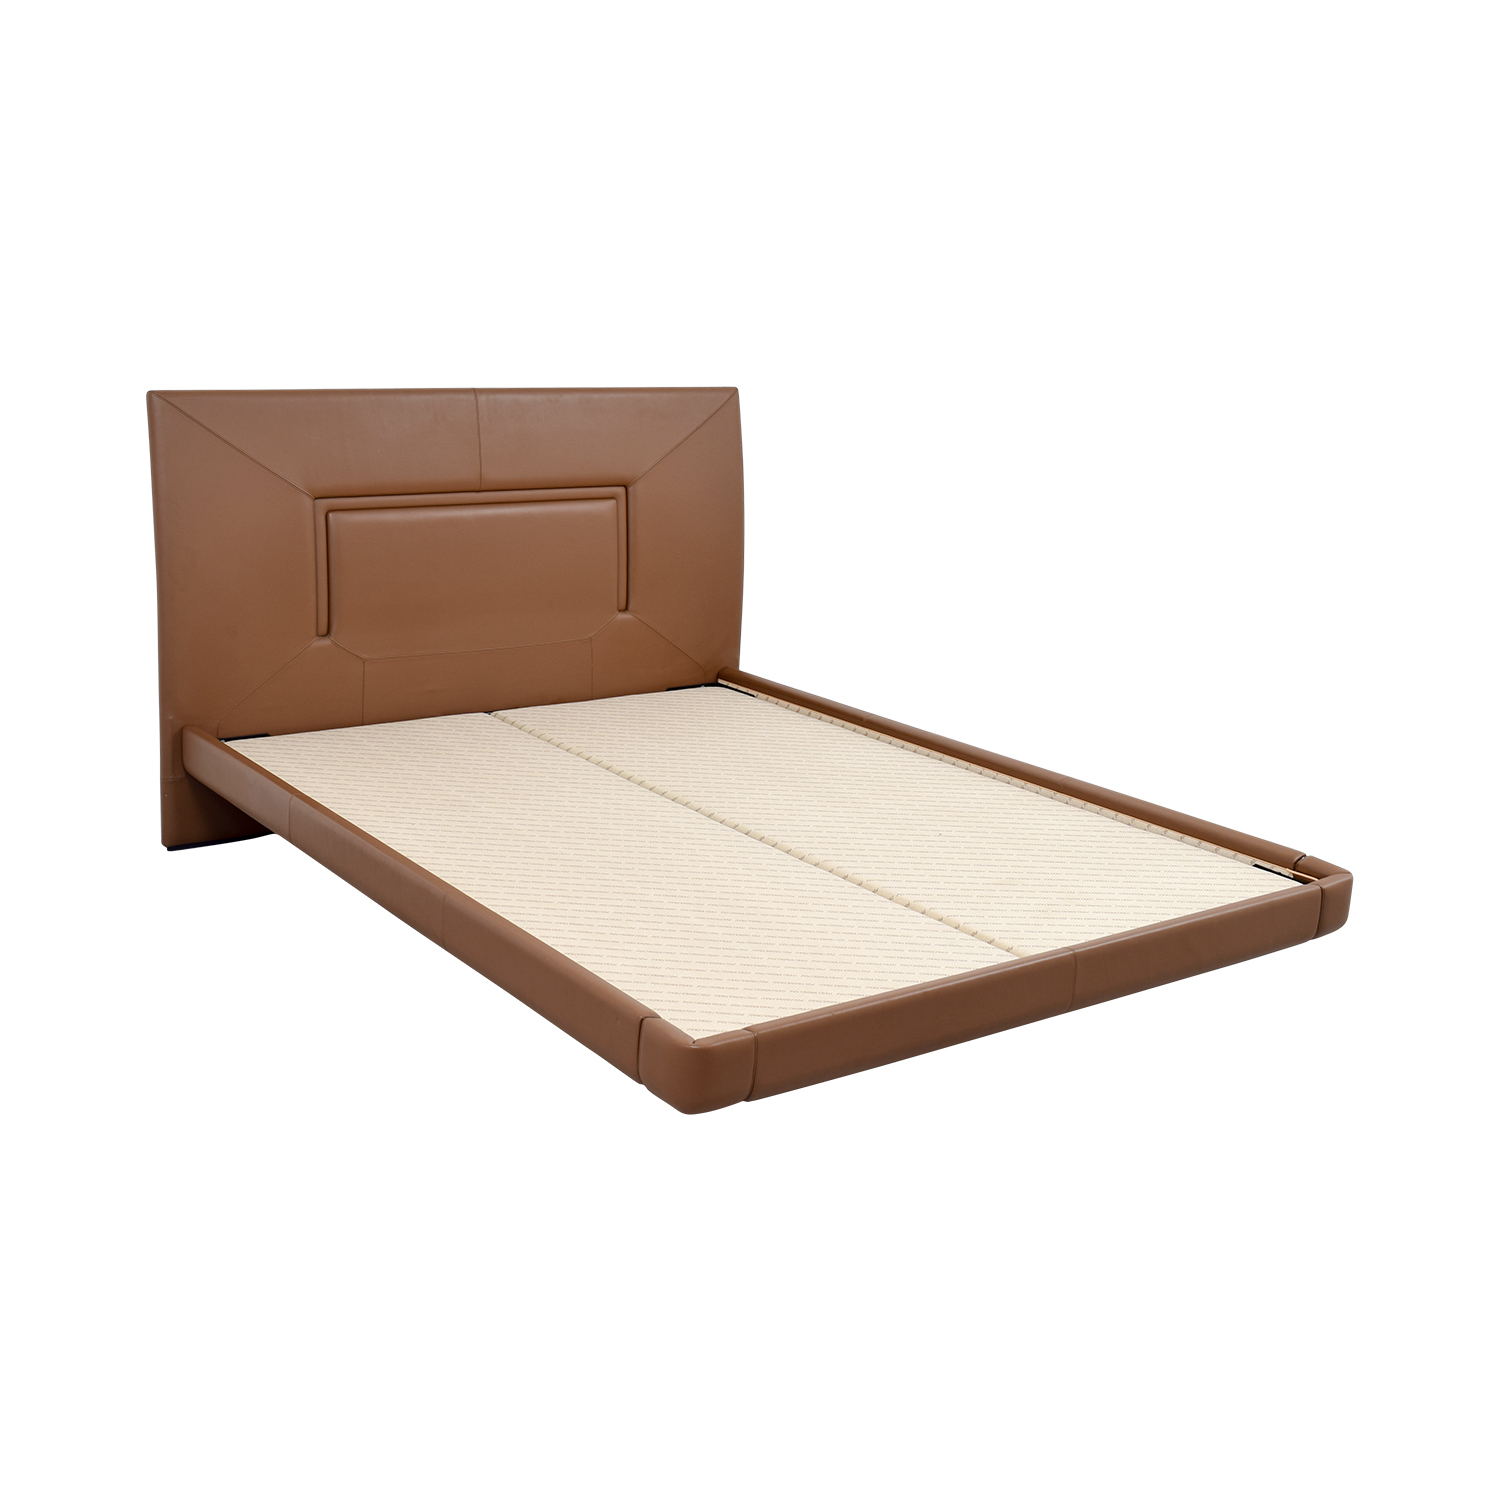 Aurora Uno Aurora Uno Brown Leather Queen Bed Frame